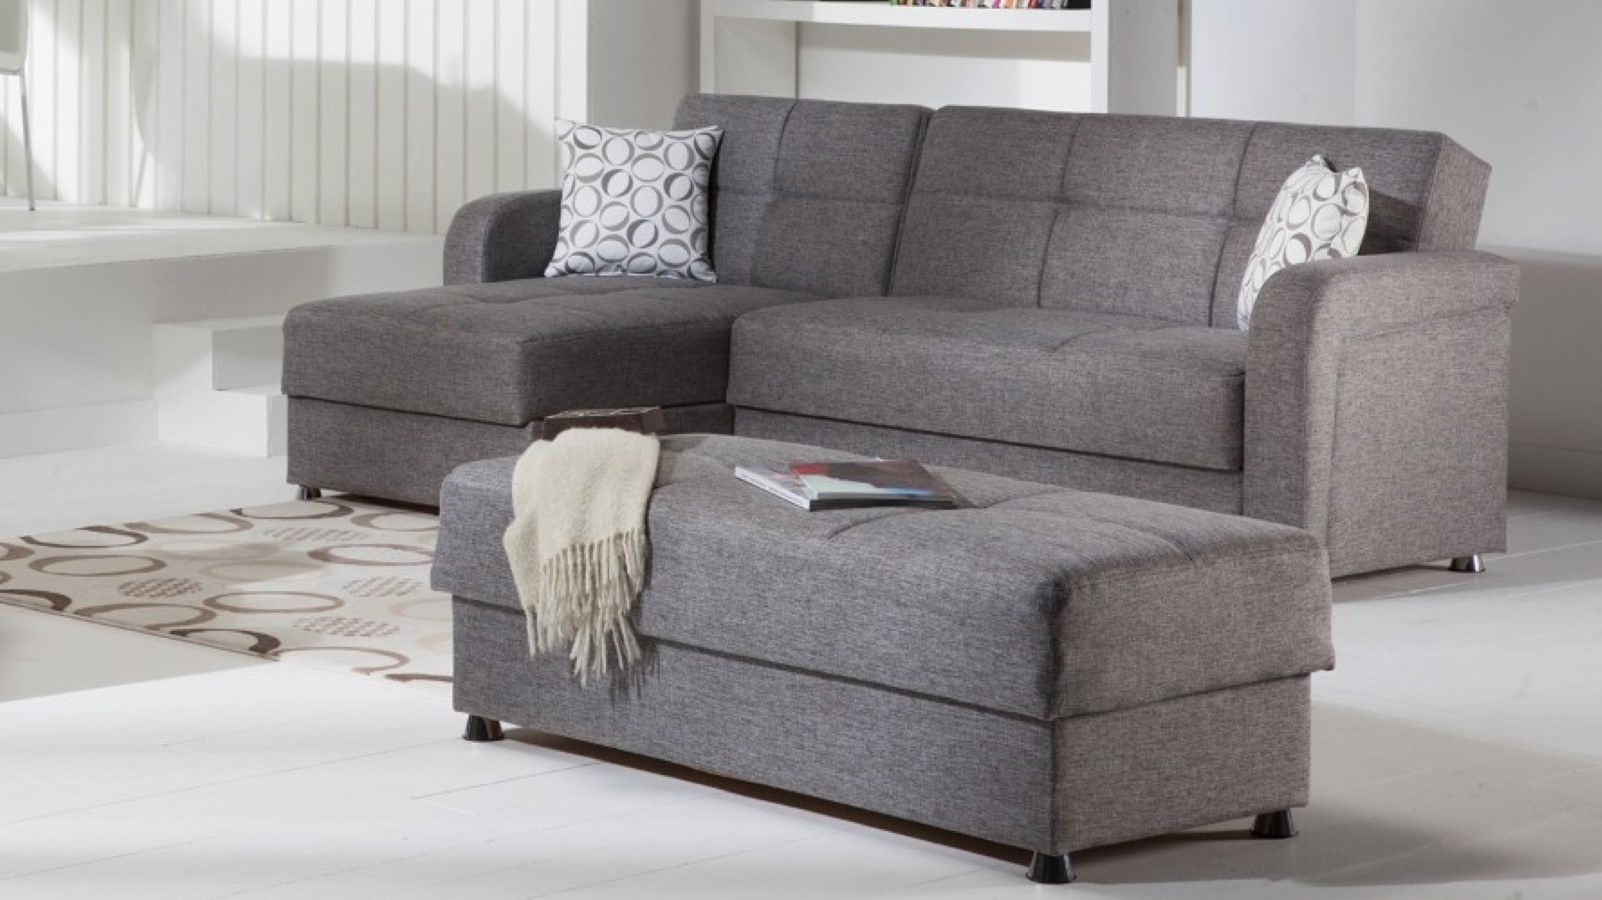 Gray sectional sofa with chaise luxurious furniture for Design chaise 2015